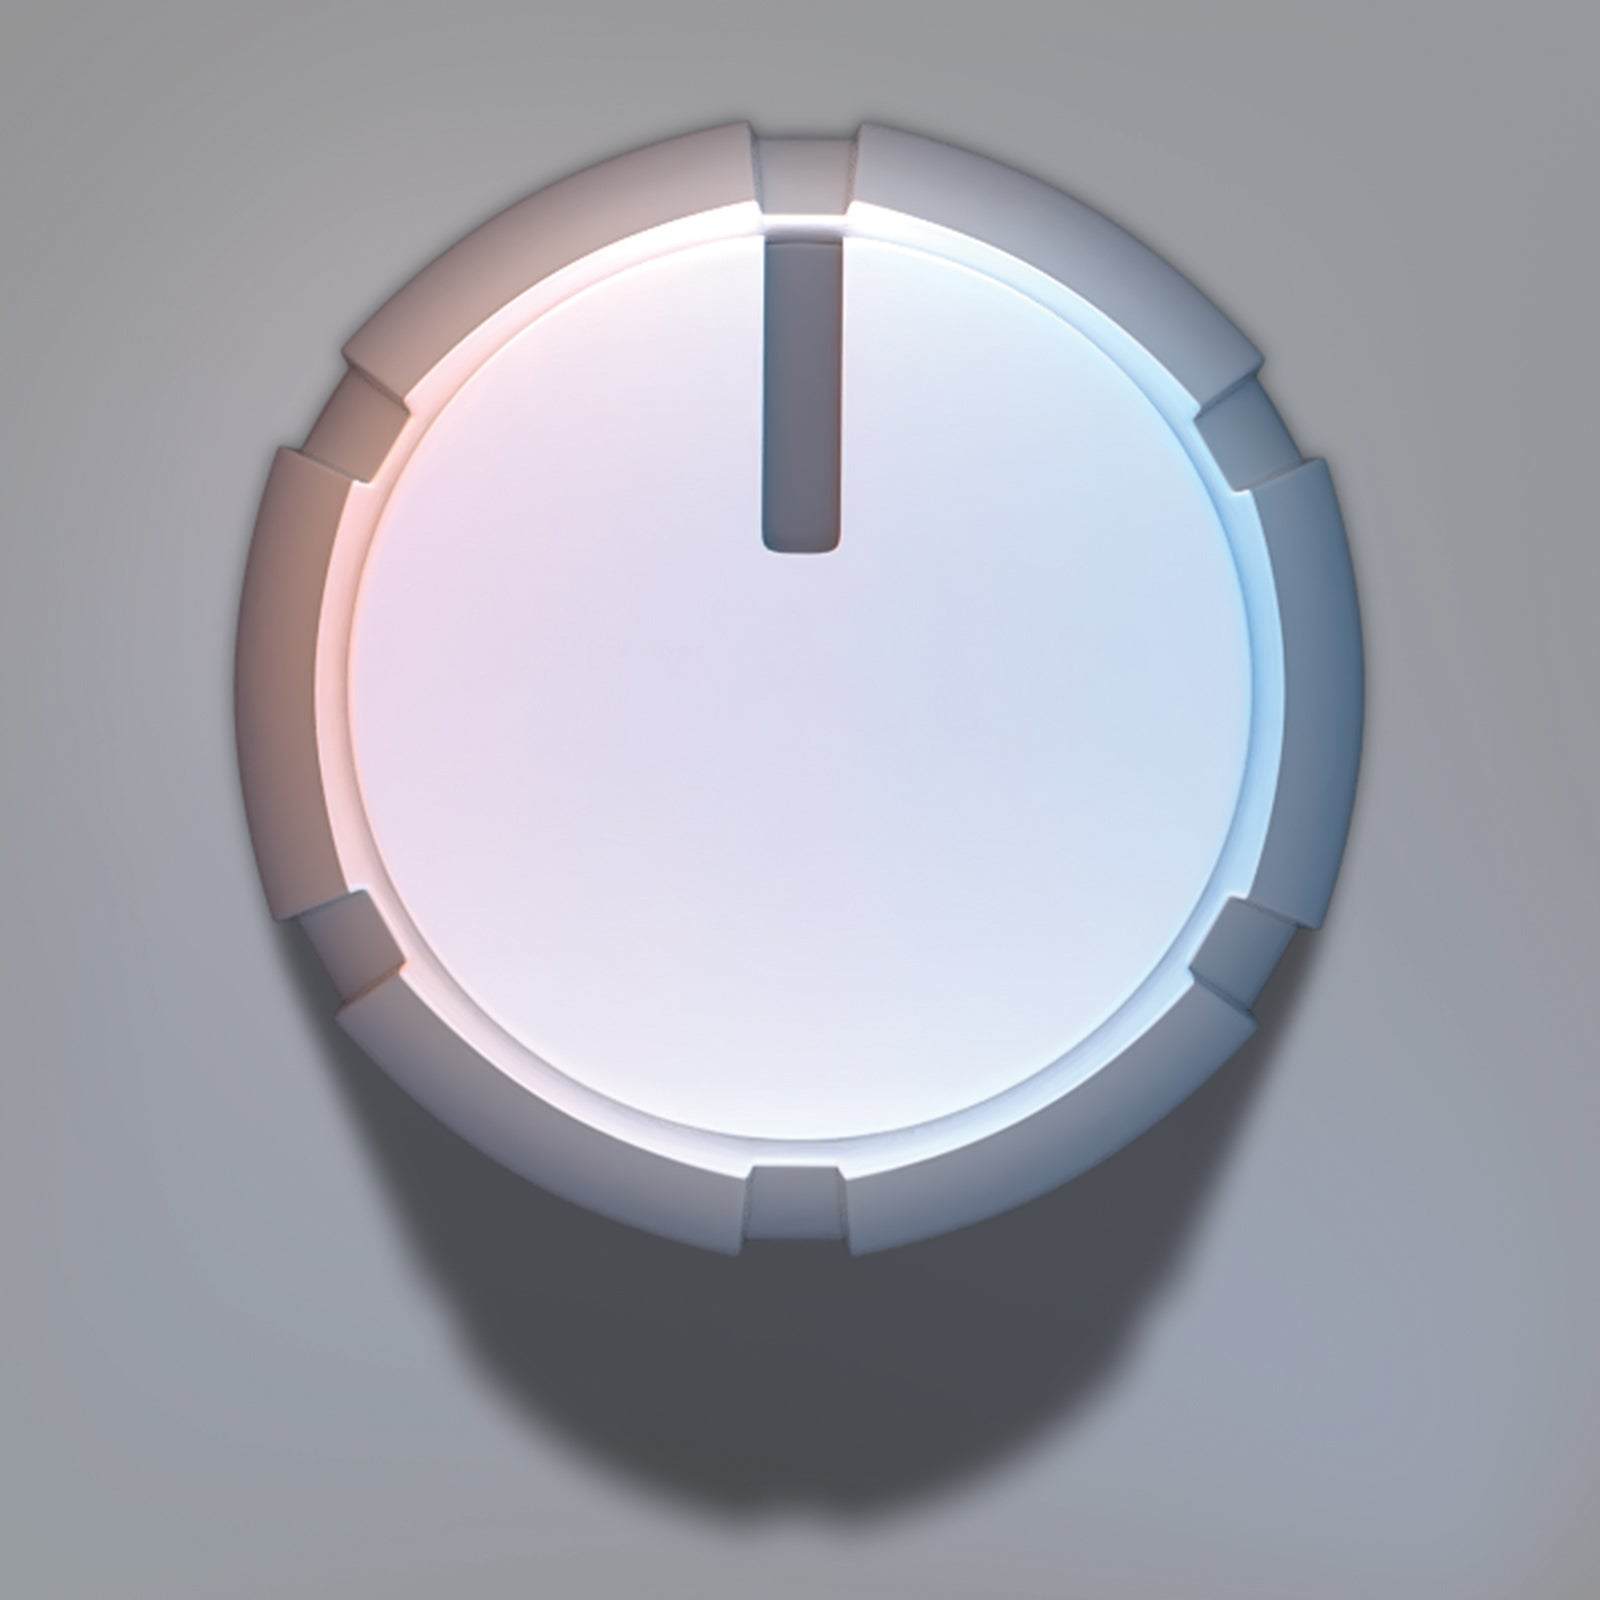 Audio volume control knob 3D model